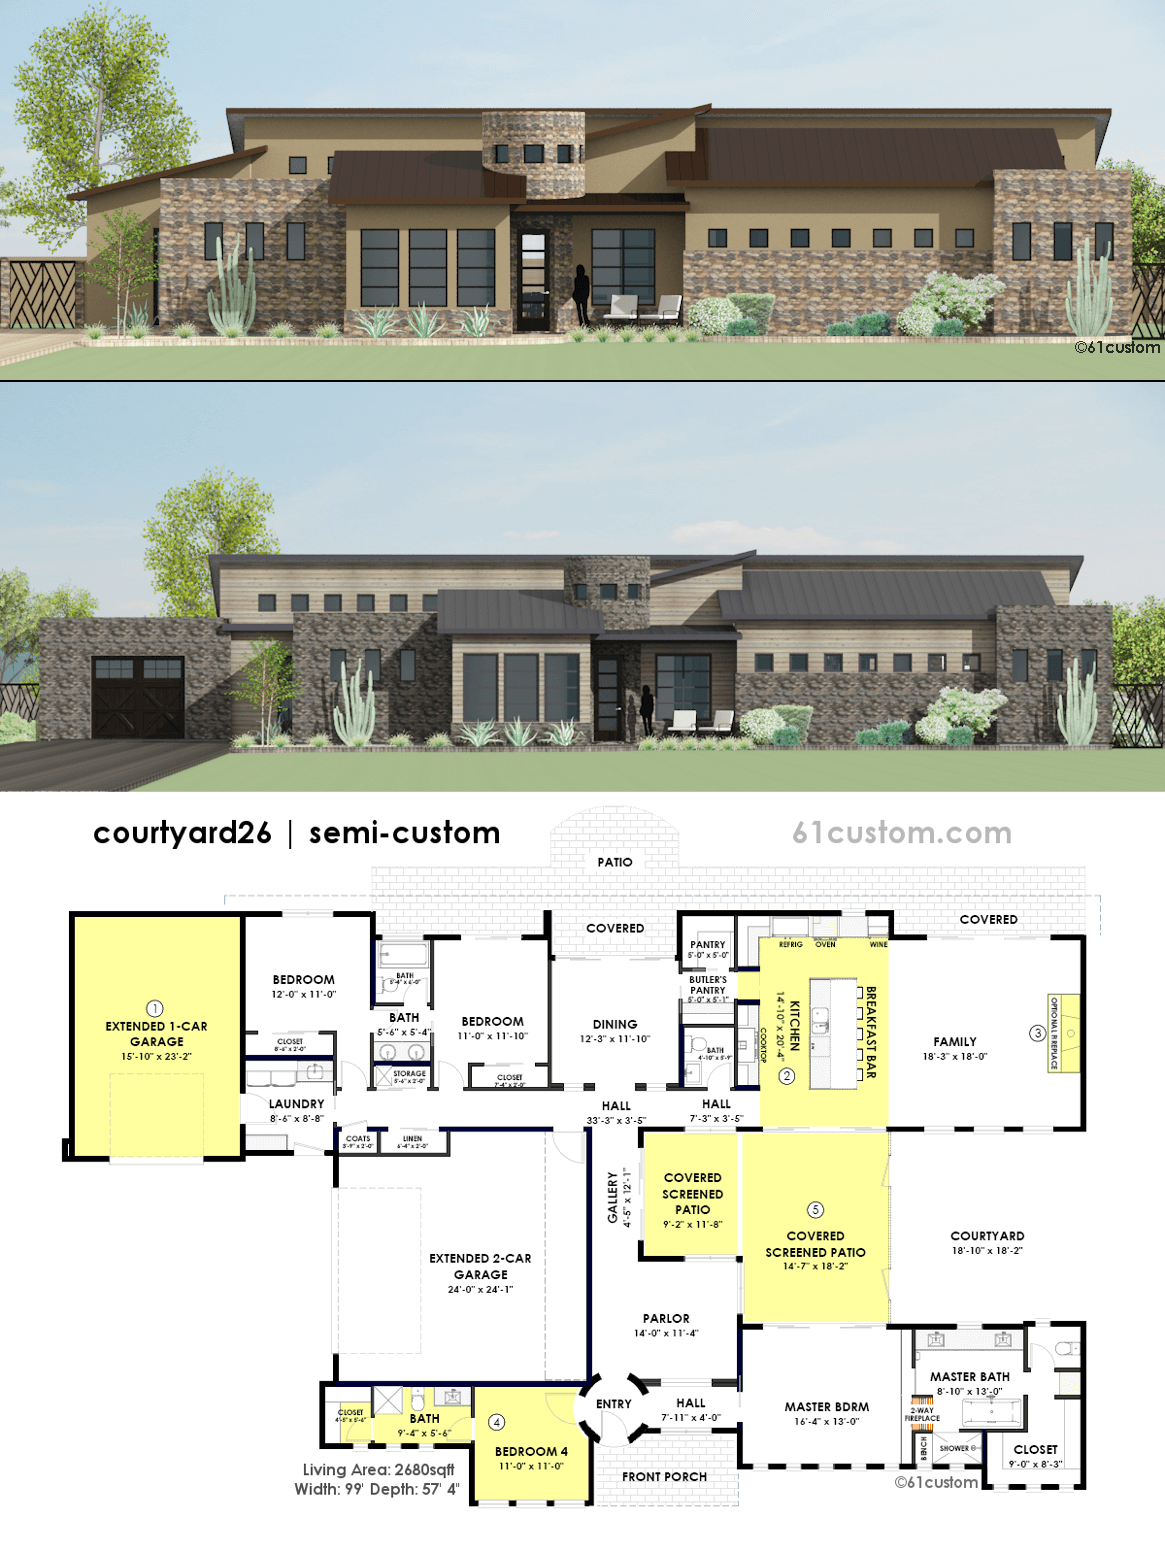 farmhouse33 modern farmhouse plan 61custom contemporary contemporary courtyard house plan 61custom